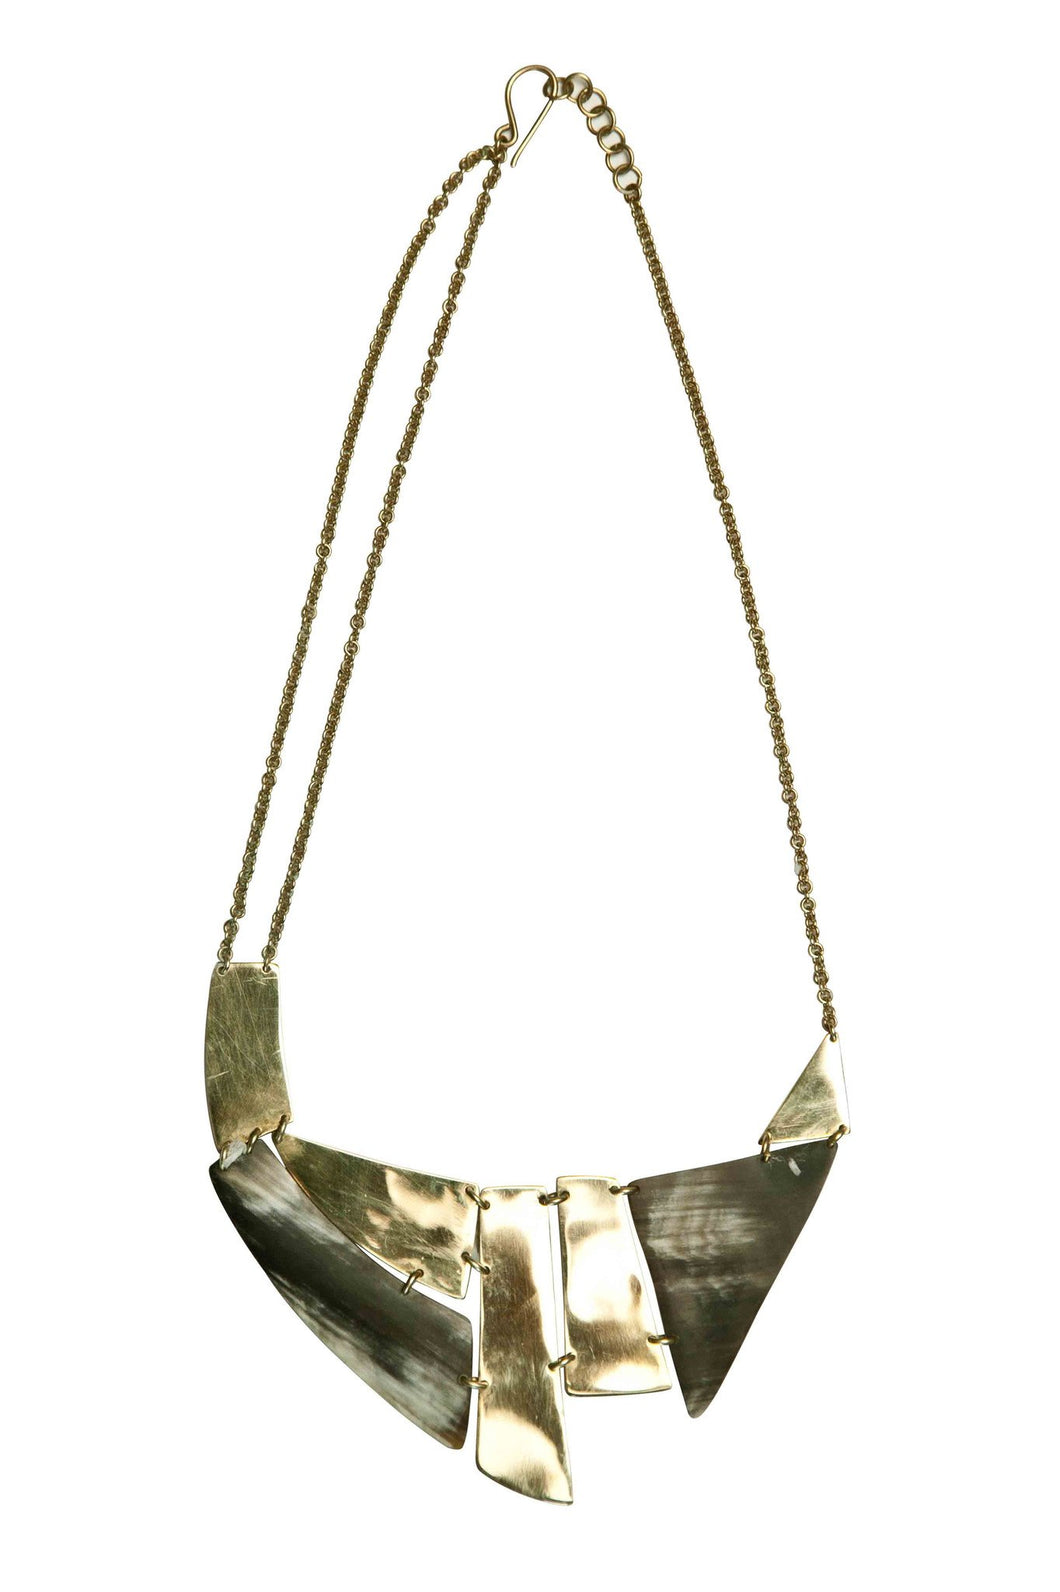 Kerina Dark Horn + Brass Breastplate Necklace